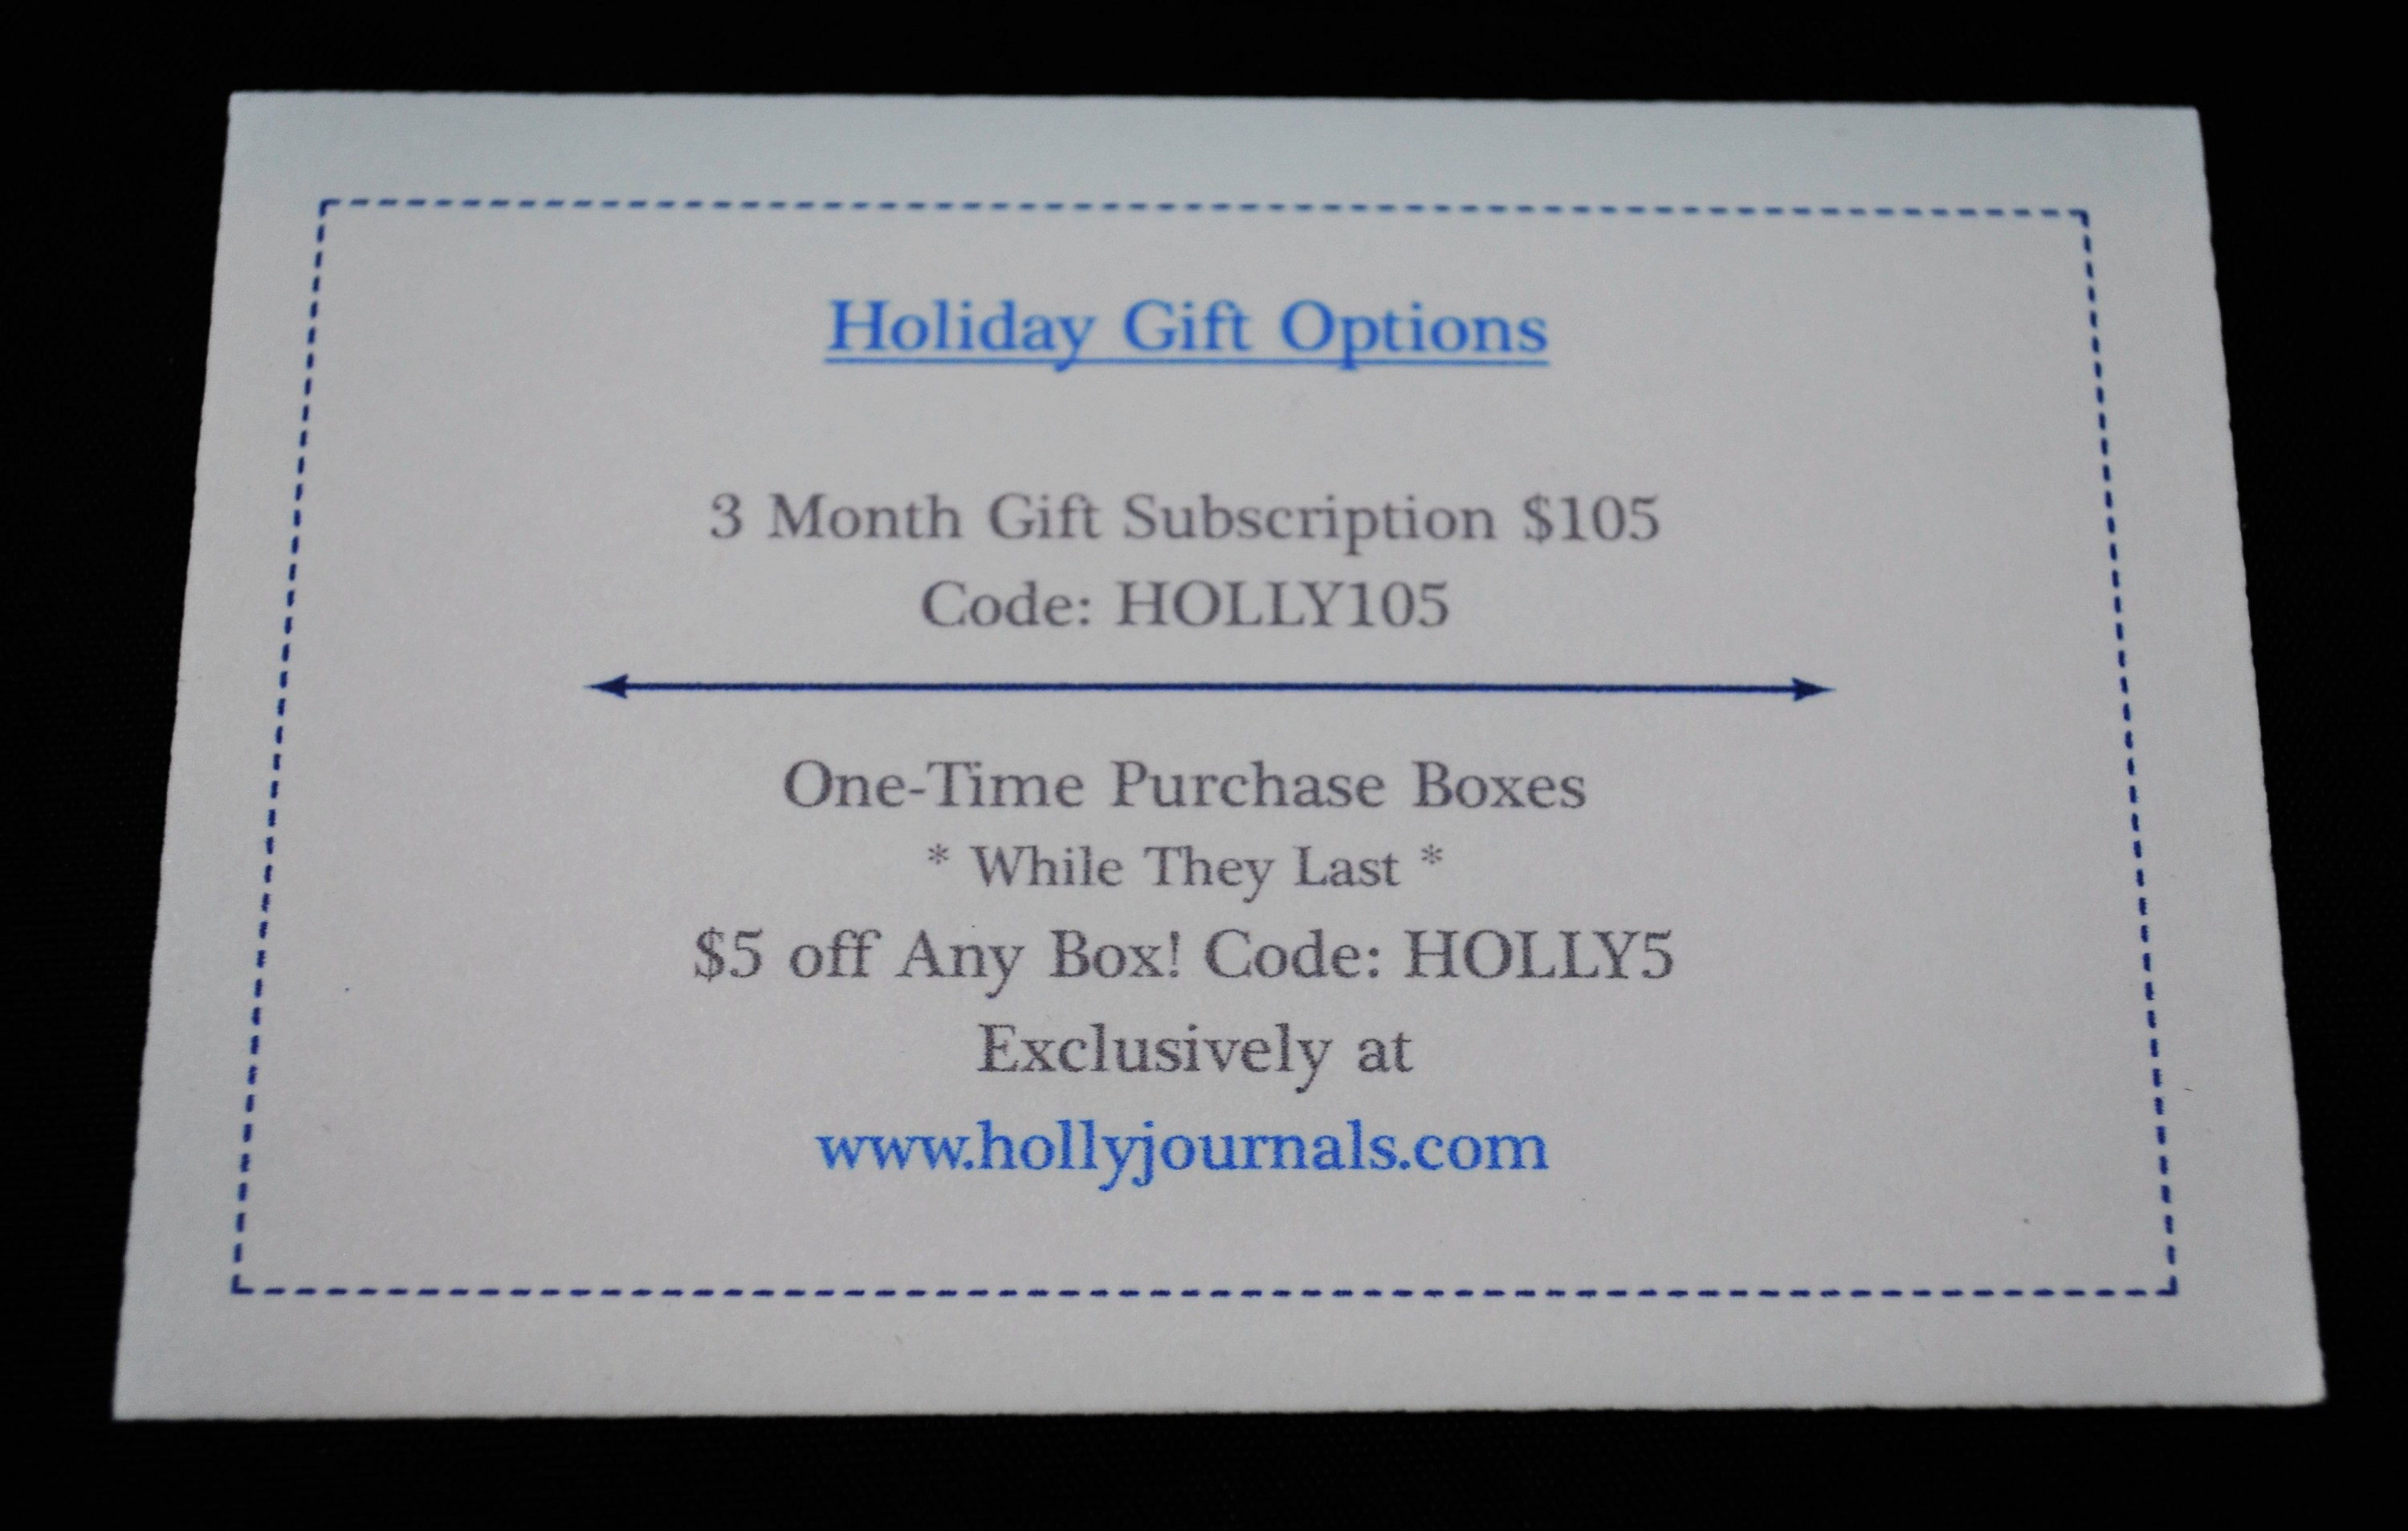 holly-journals-december-2016-gift-options